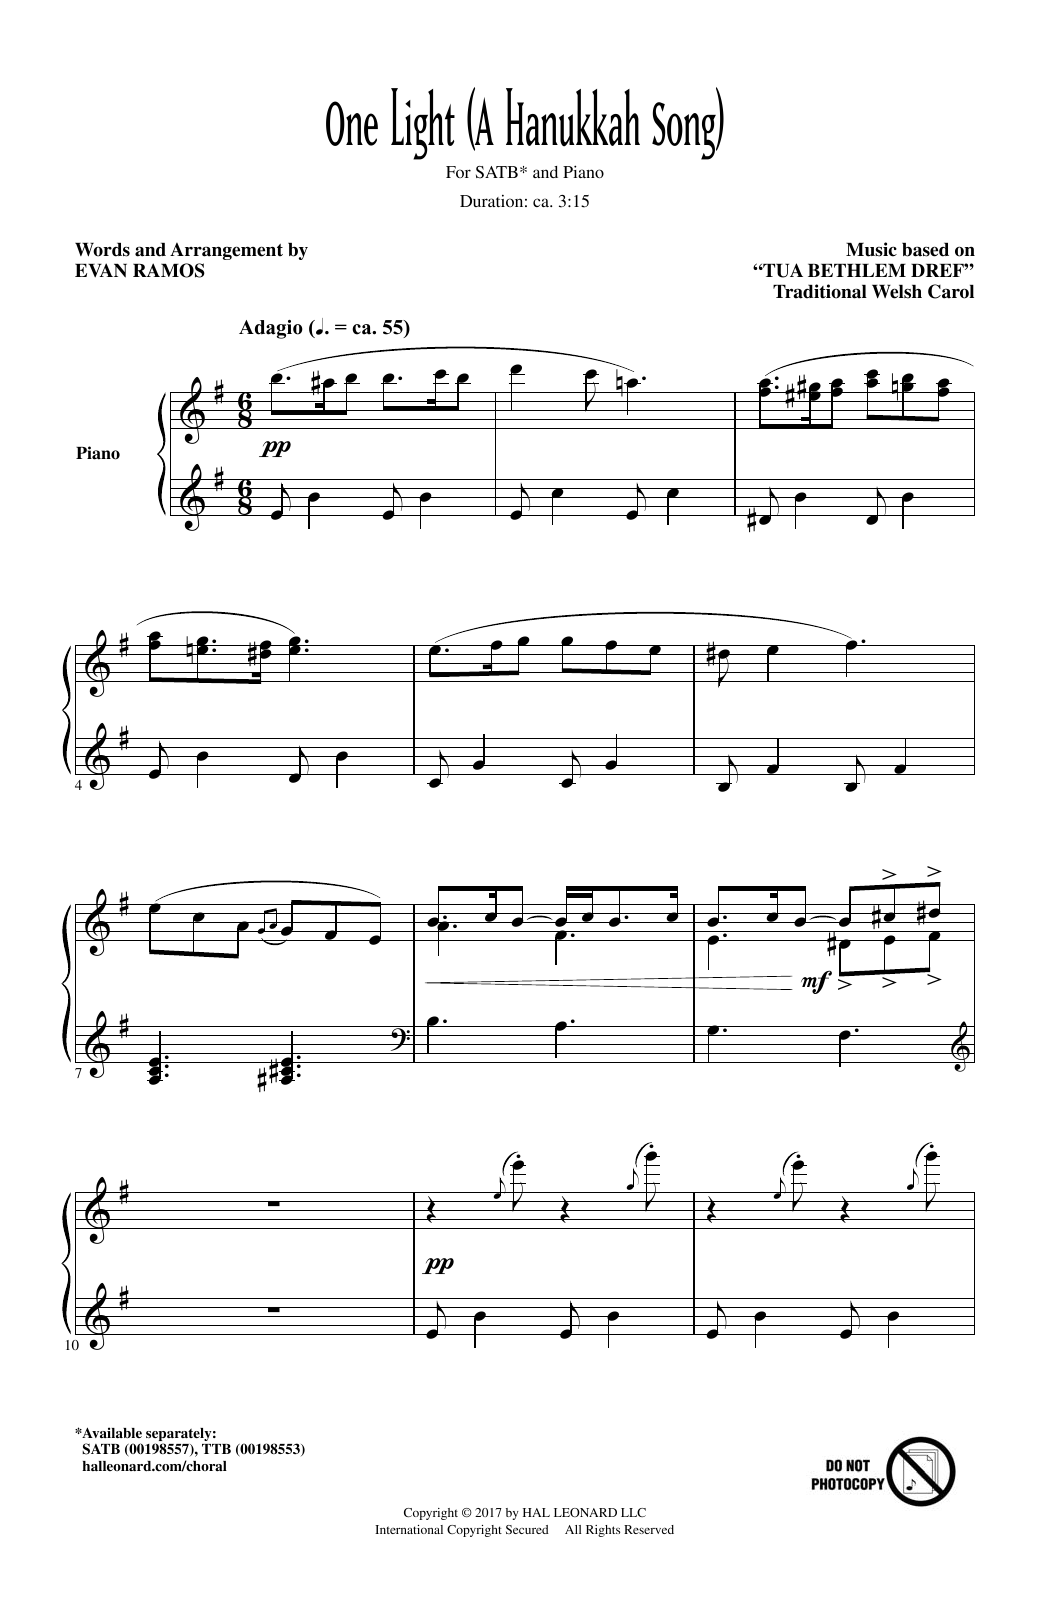 One Light (A Hanukkah Song) Sheet Music